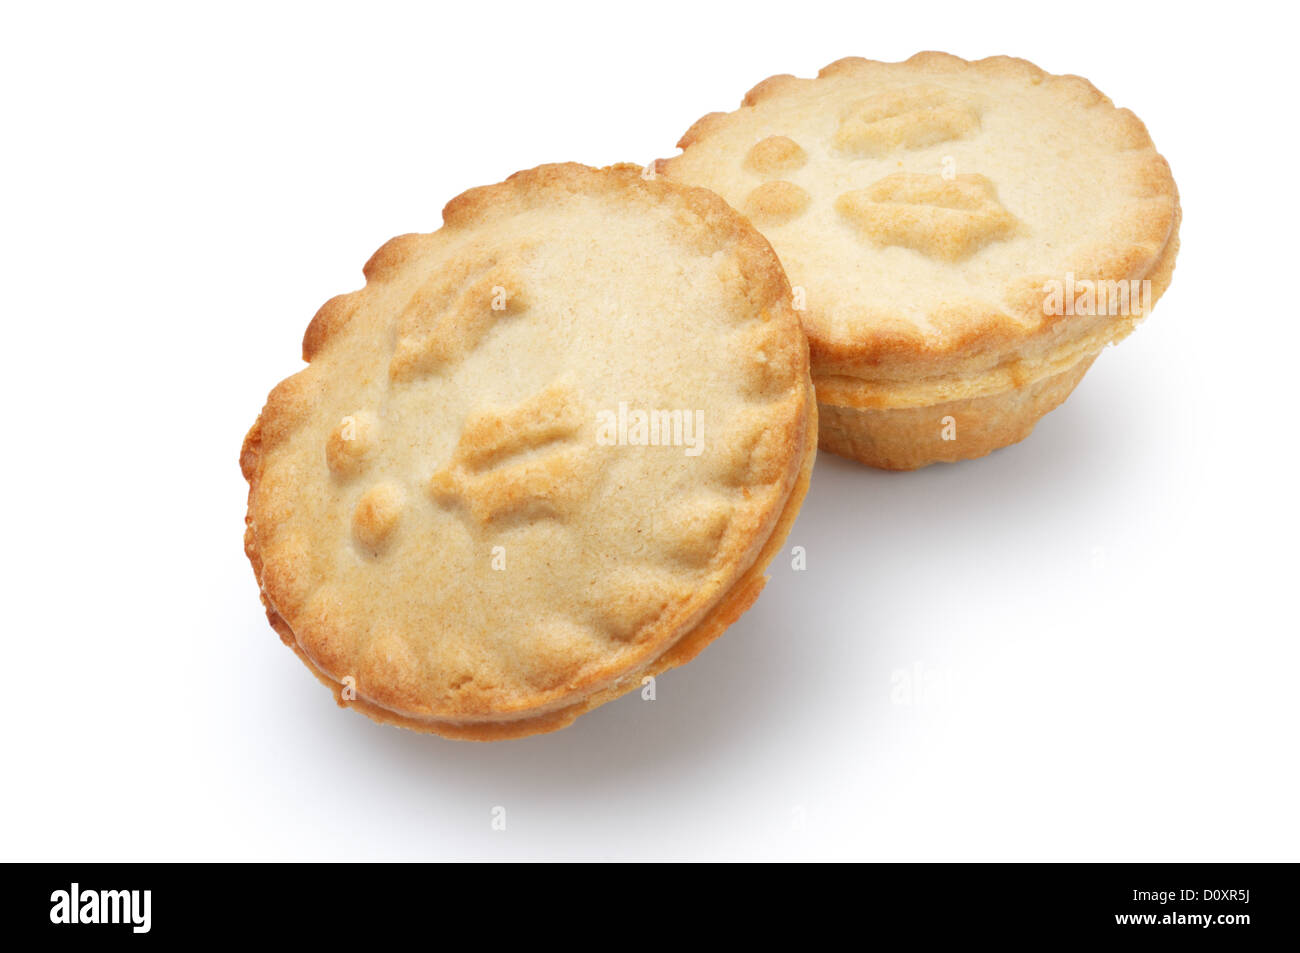 Mince Pies - John Gollop - Stock Image